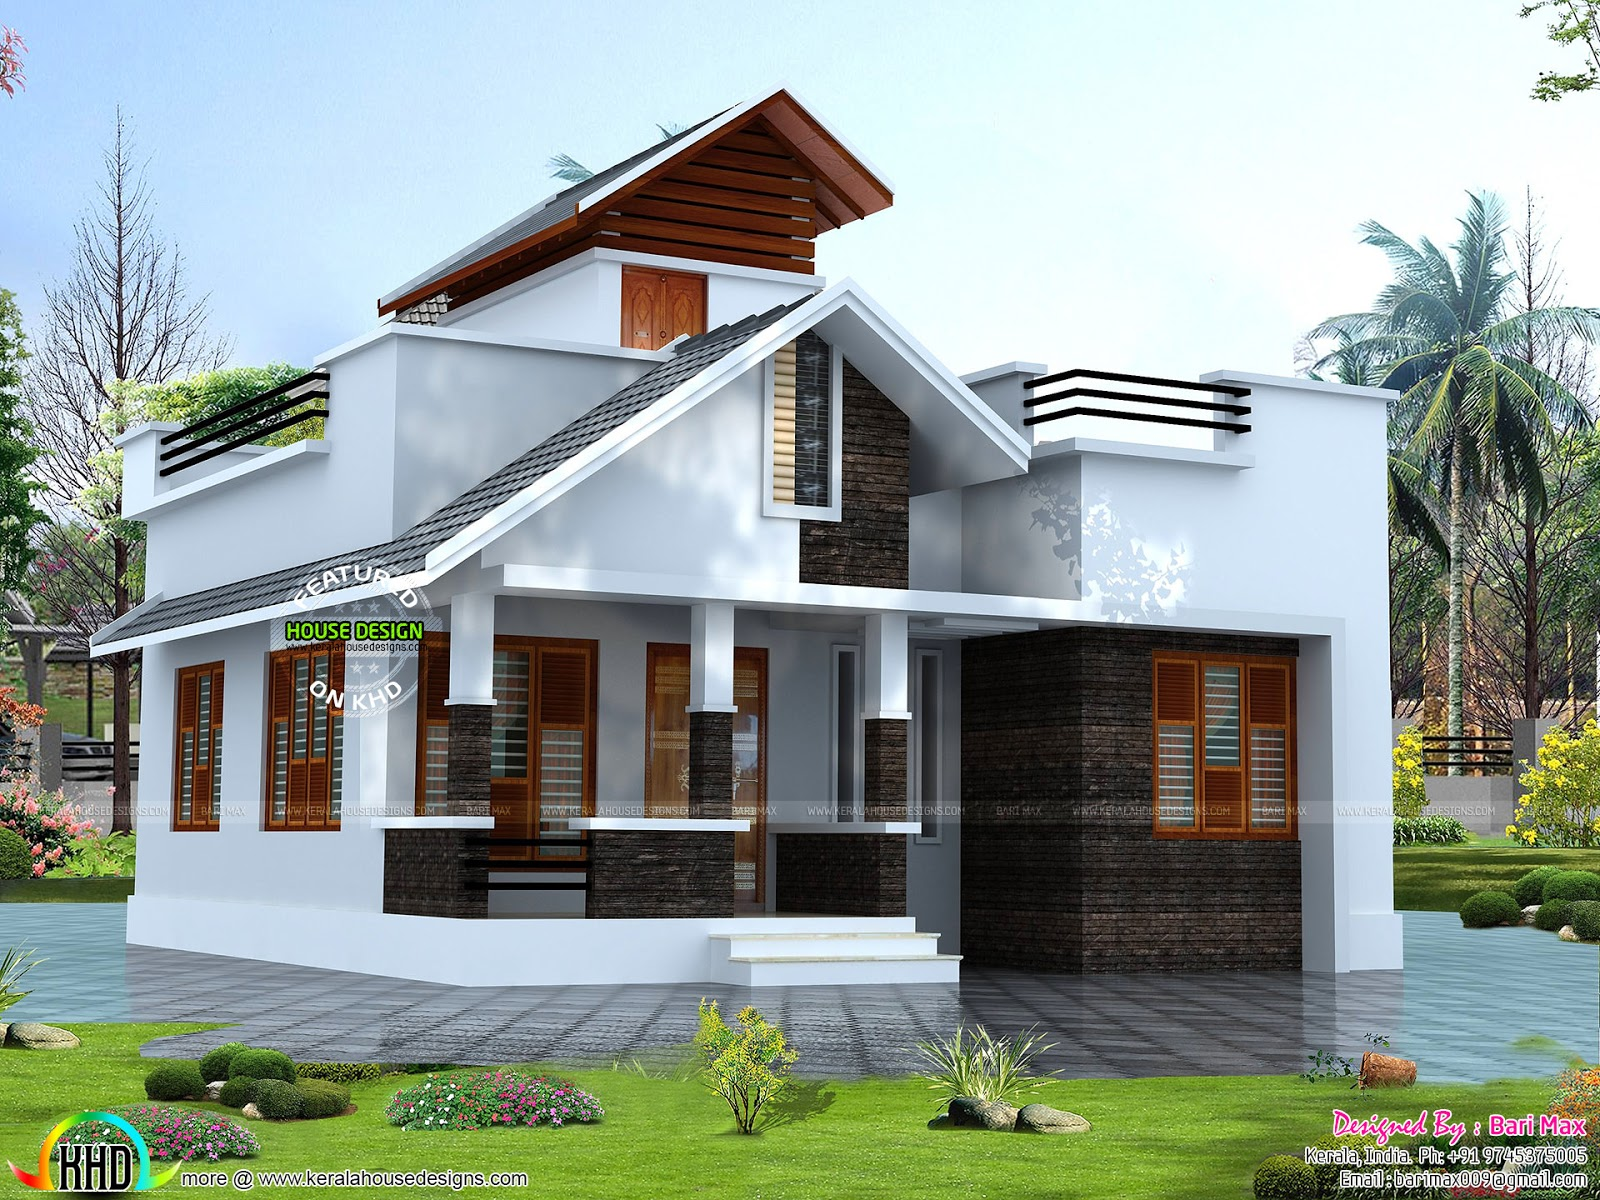 How Much Money Does It Take To Build A House In India – House Plan